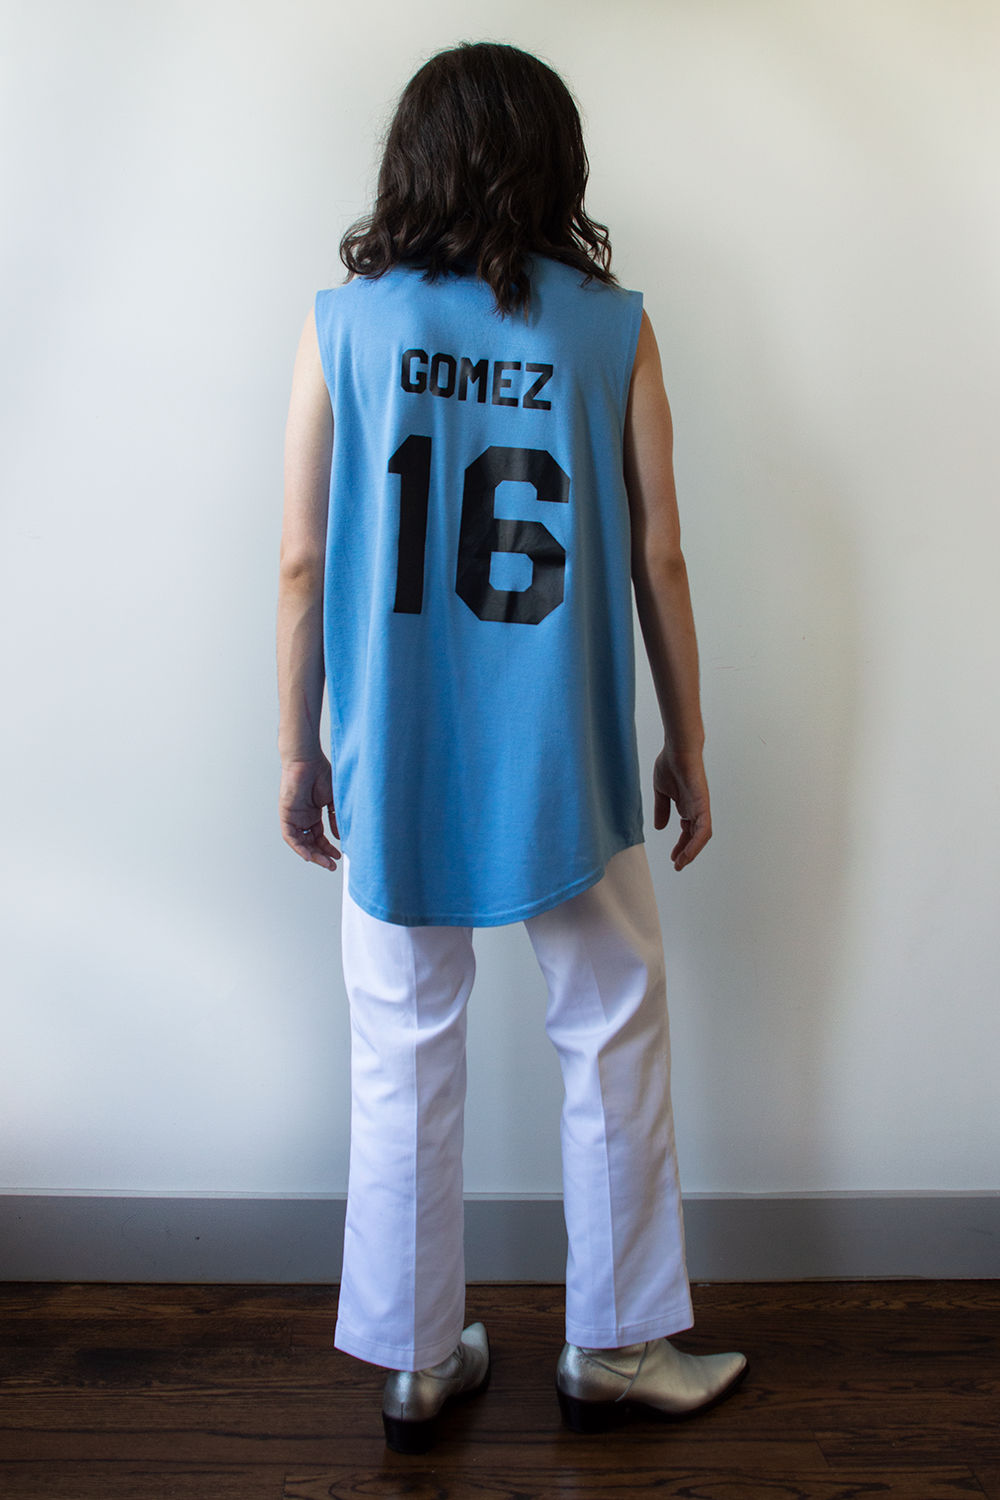 Selena Gomez jersey in blue